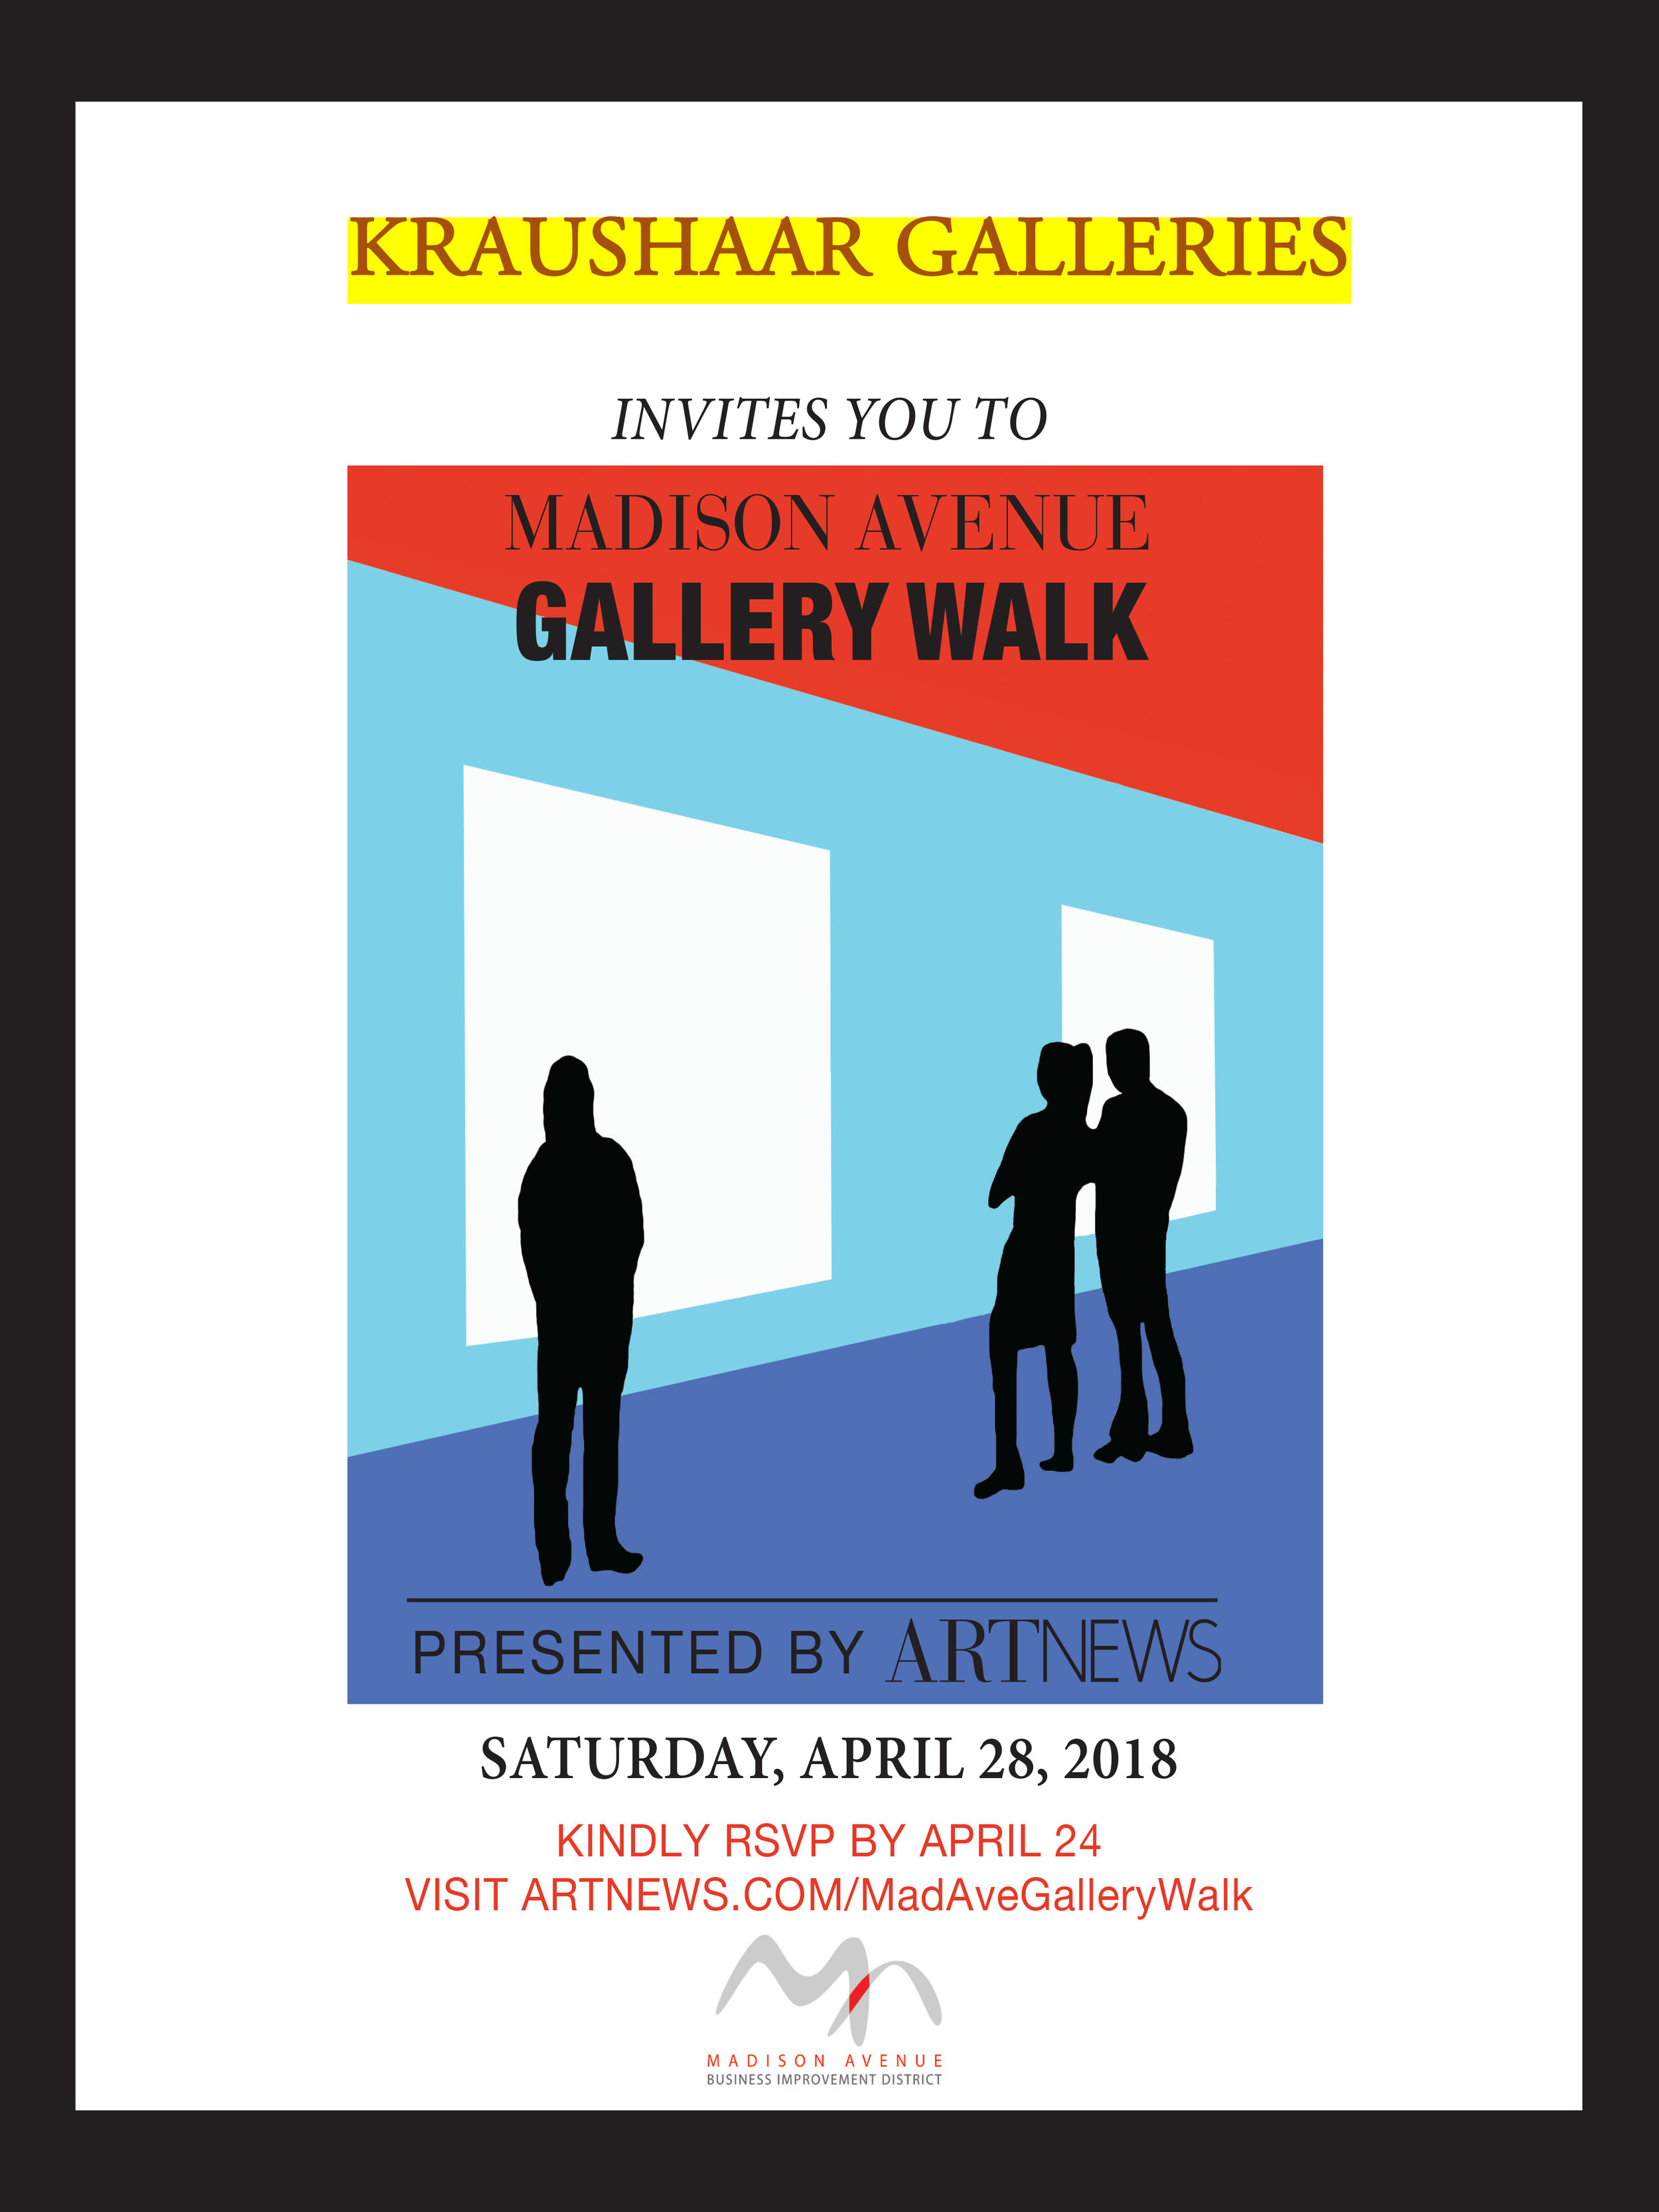 "Announcement reading ""Kraushaar Galleries invites you to Madison Avenue Gallery Walk. Presented by ArtNews. Kindly RSVP by April 24. Visit artnews.com/MadAveGalleryWalk."" Image at center of three silhouette figures standing in front of blue wall with white cutout."